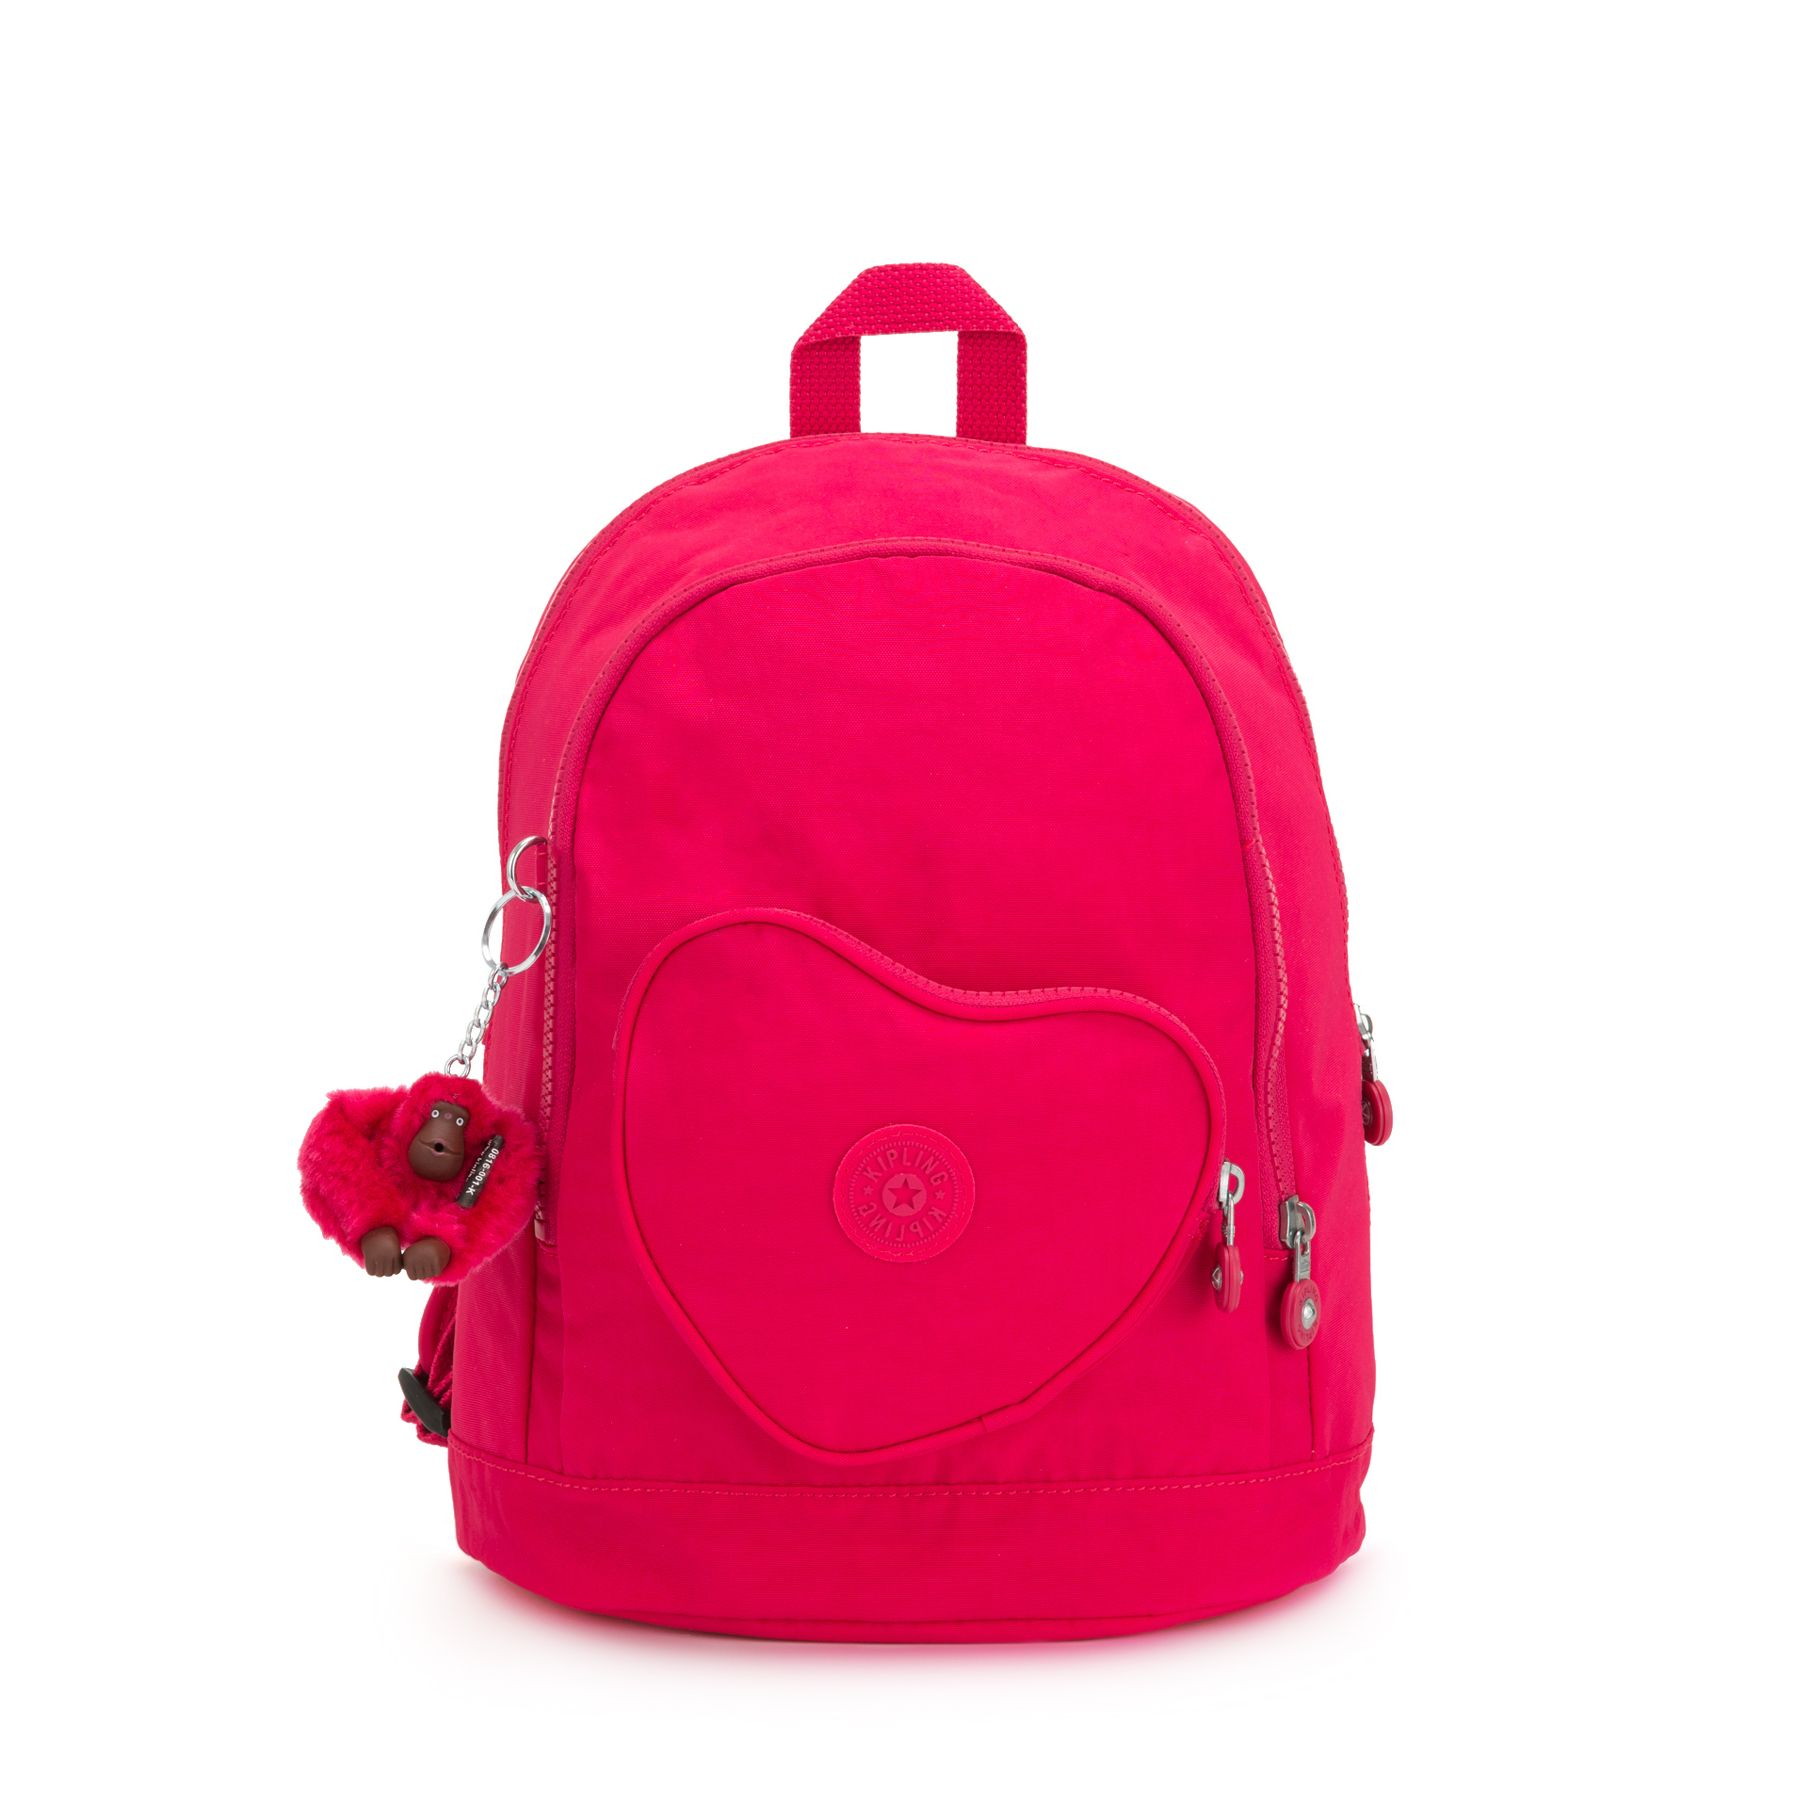 HEART BACKPACK by Kipling - Front view